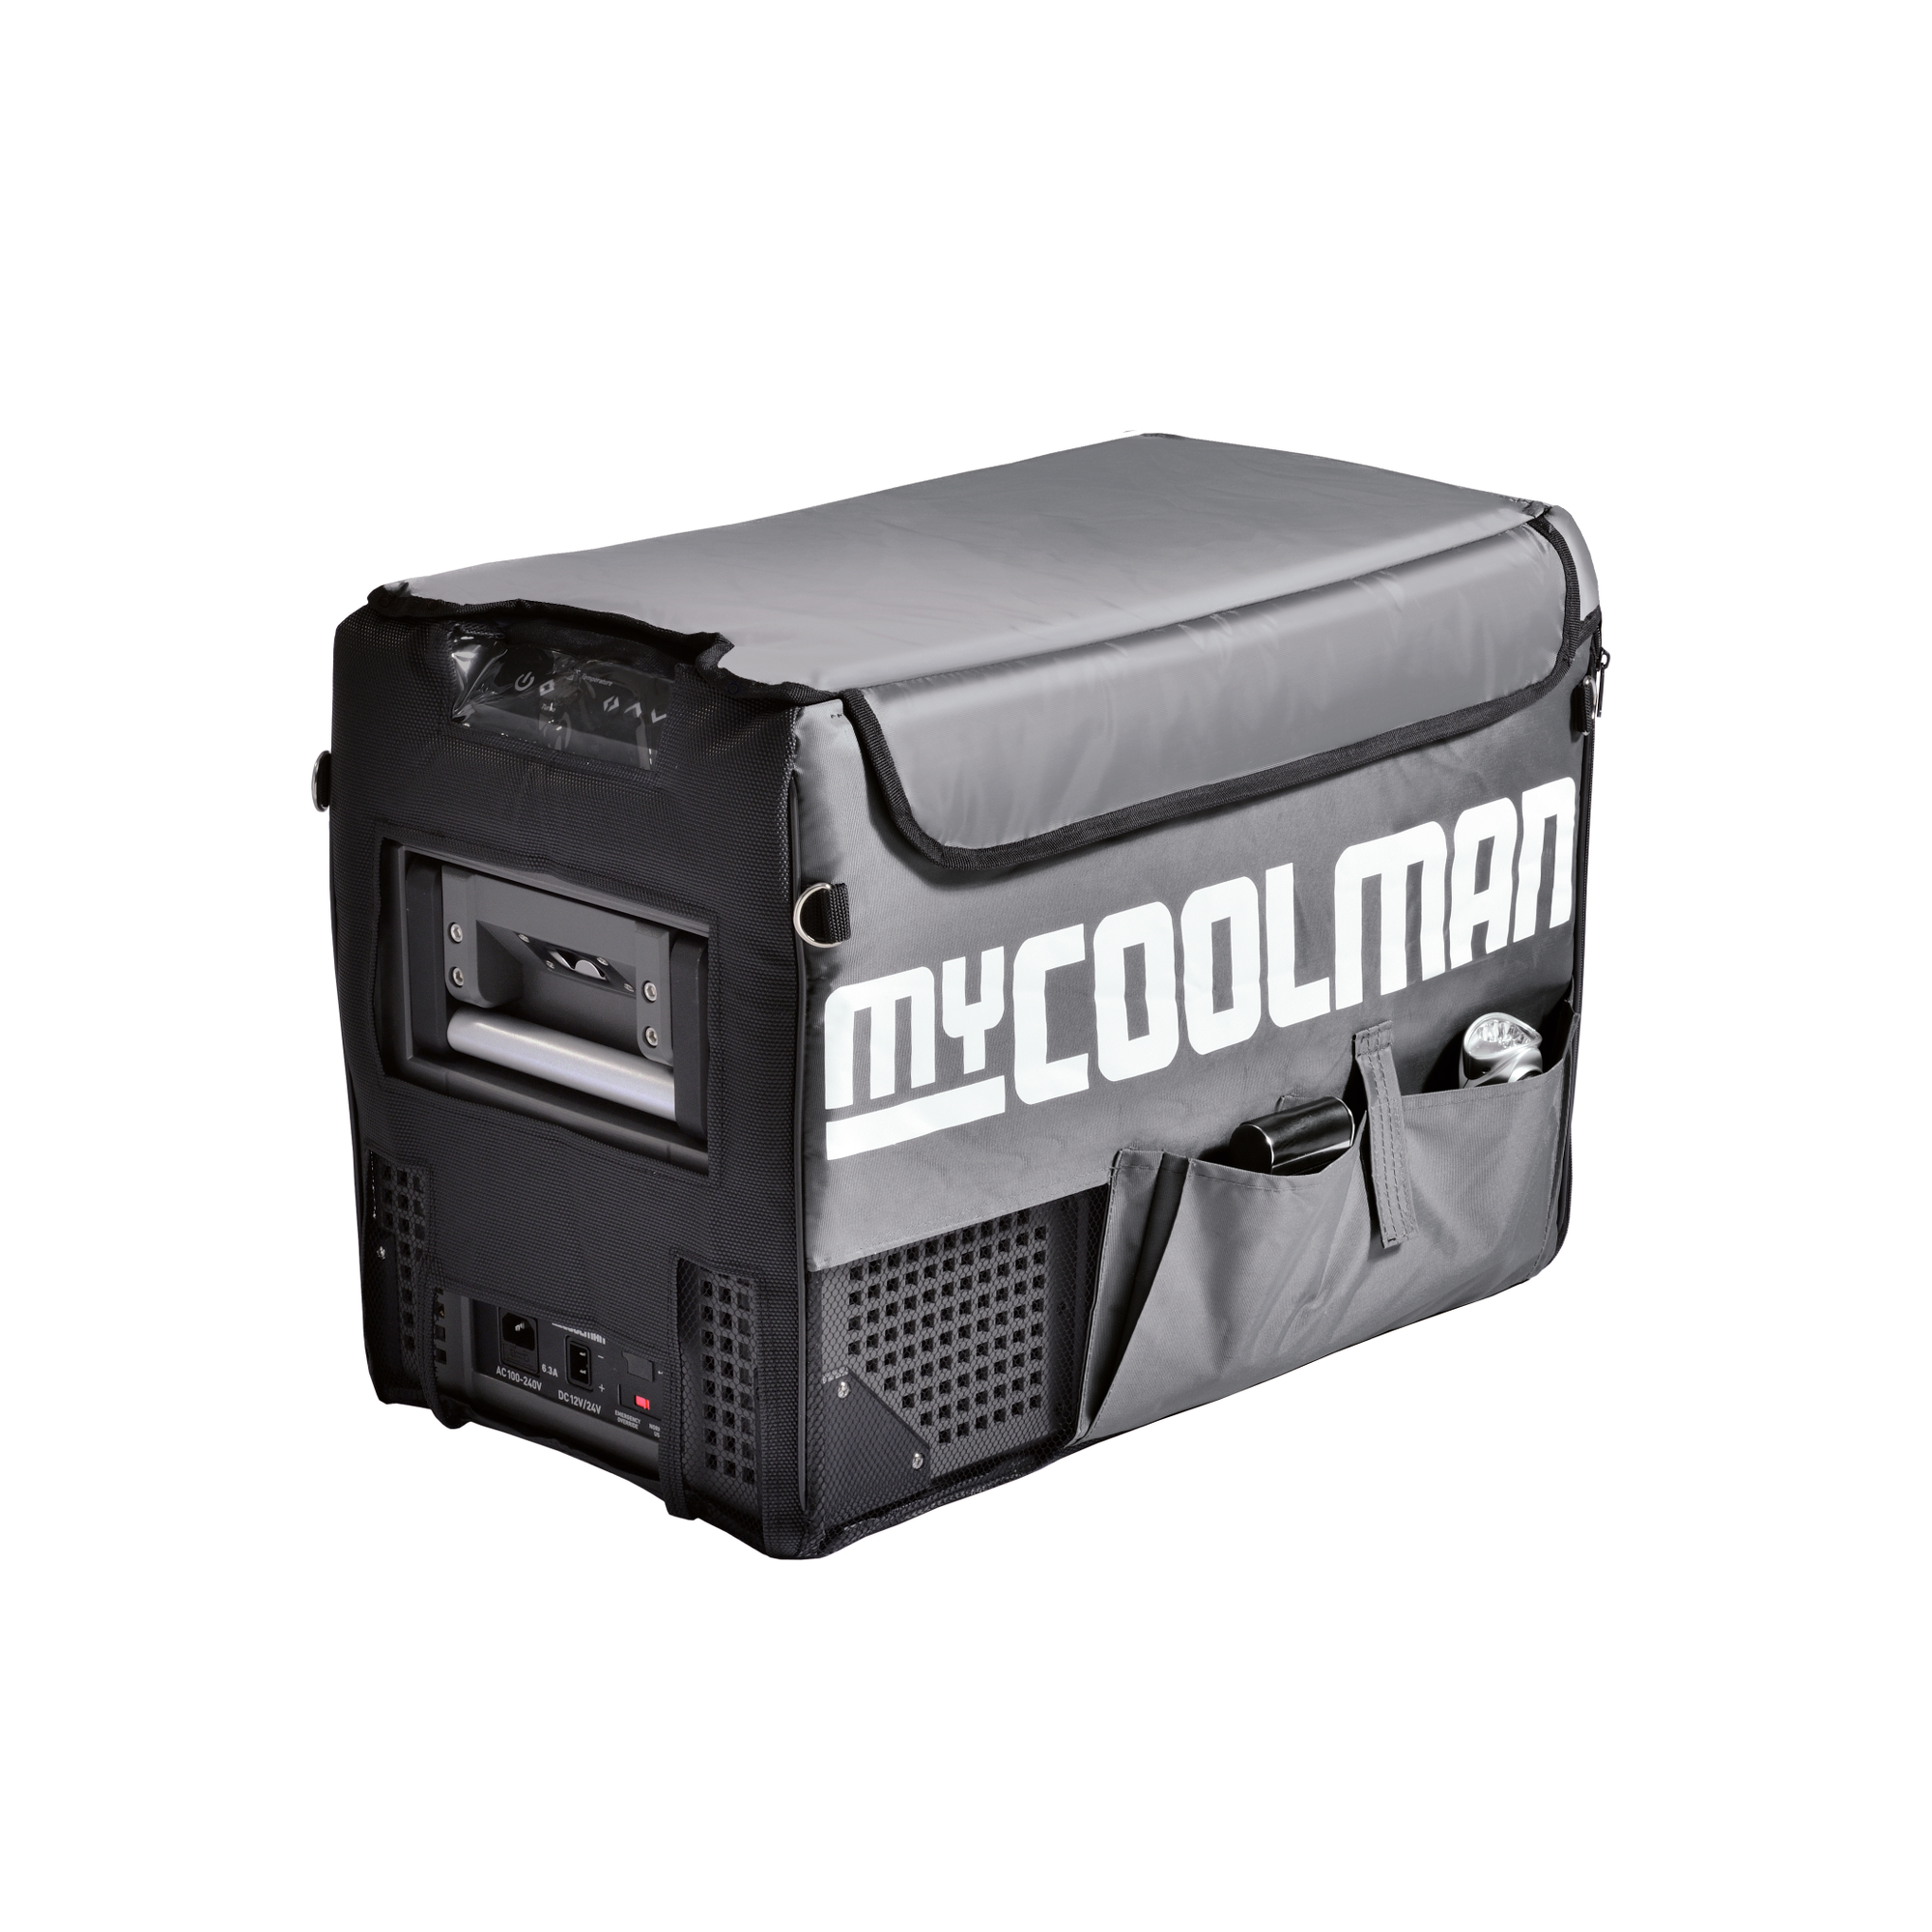 30 Litre: Insulated Cover myCOOLMAN | Portable Fridges & Freezers